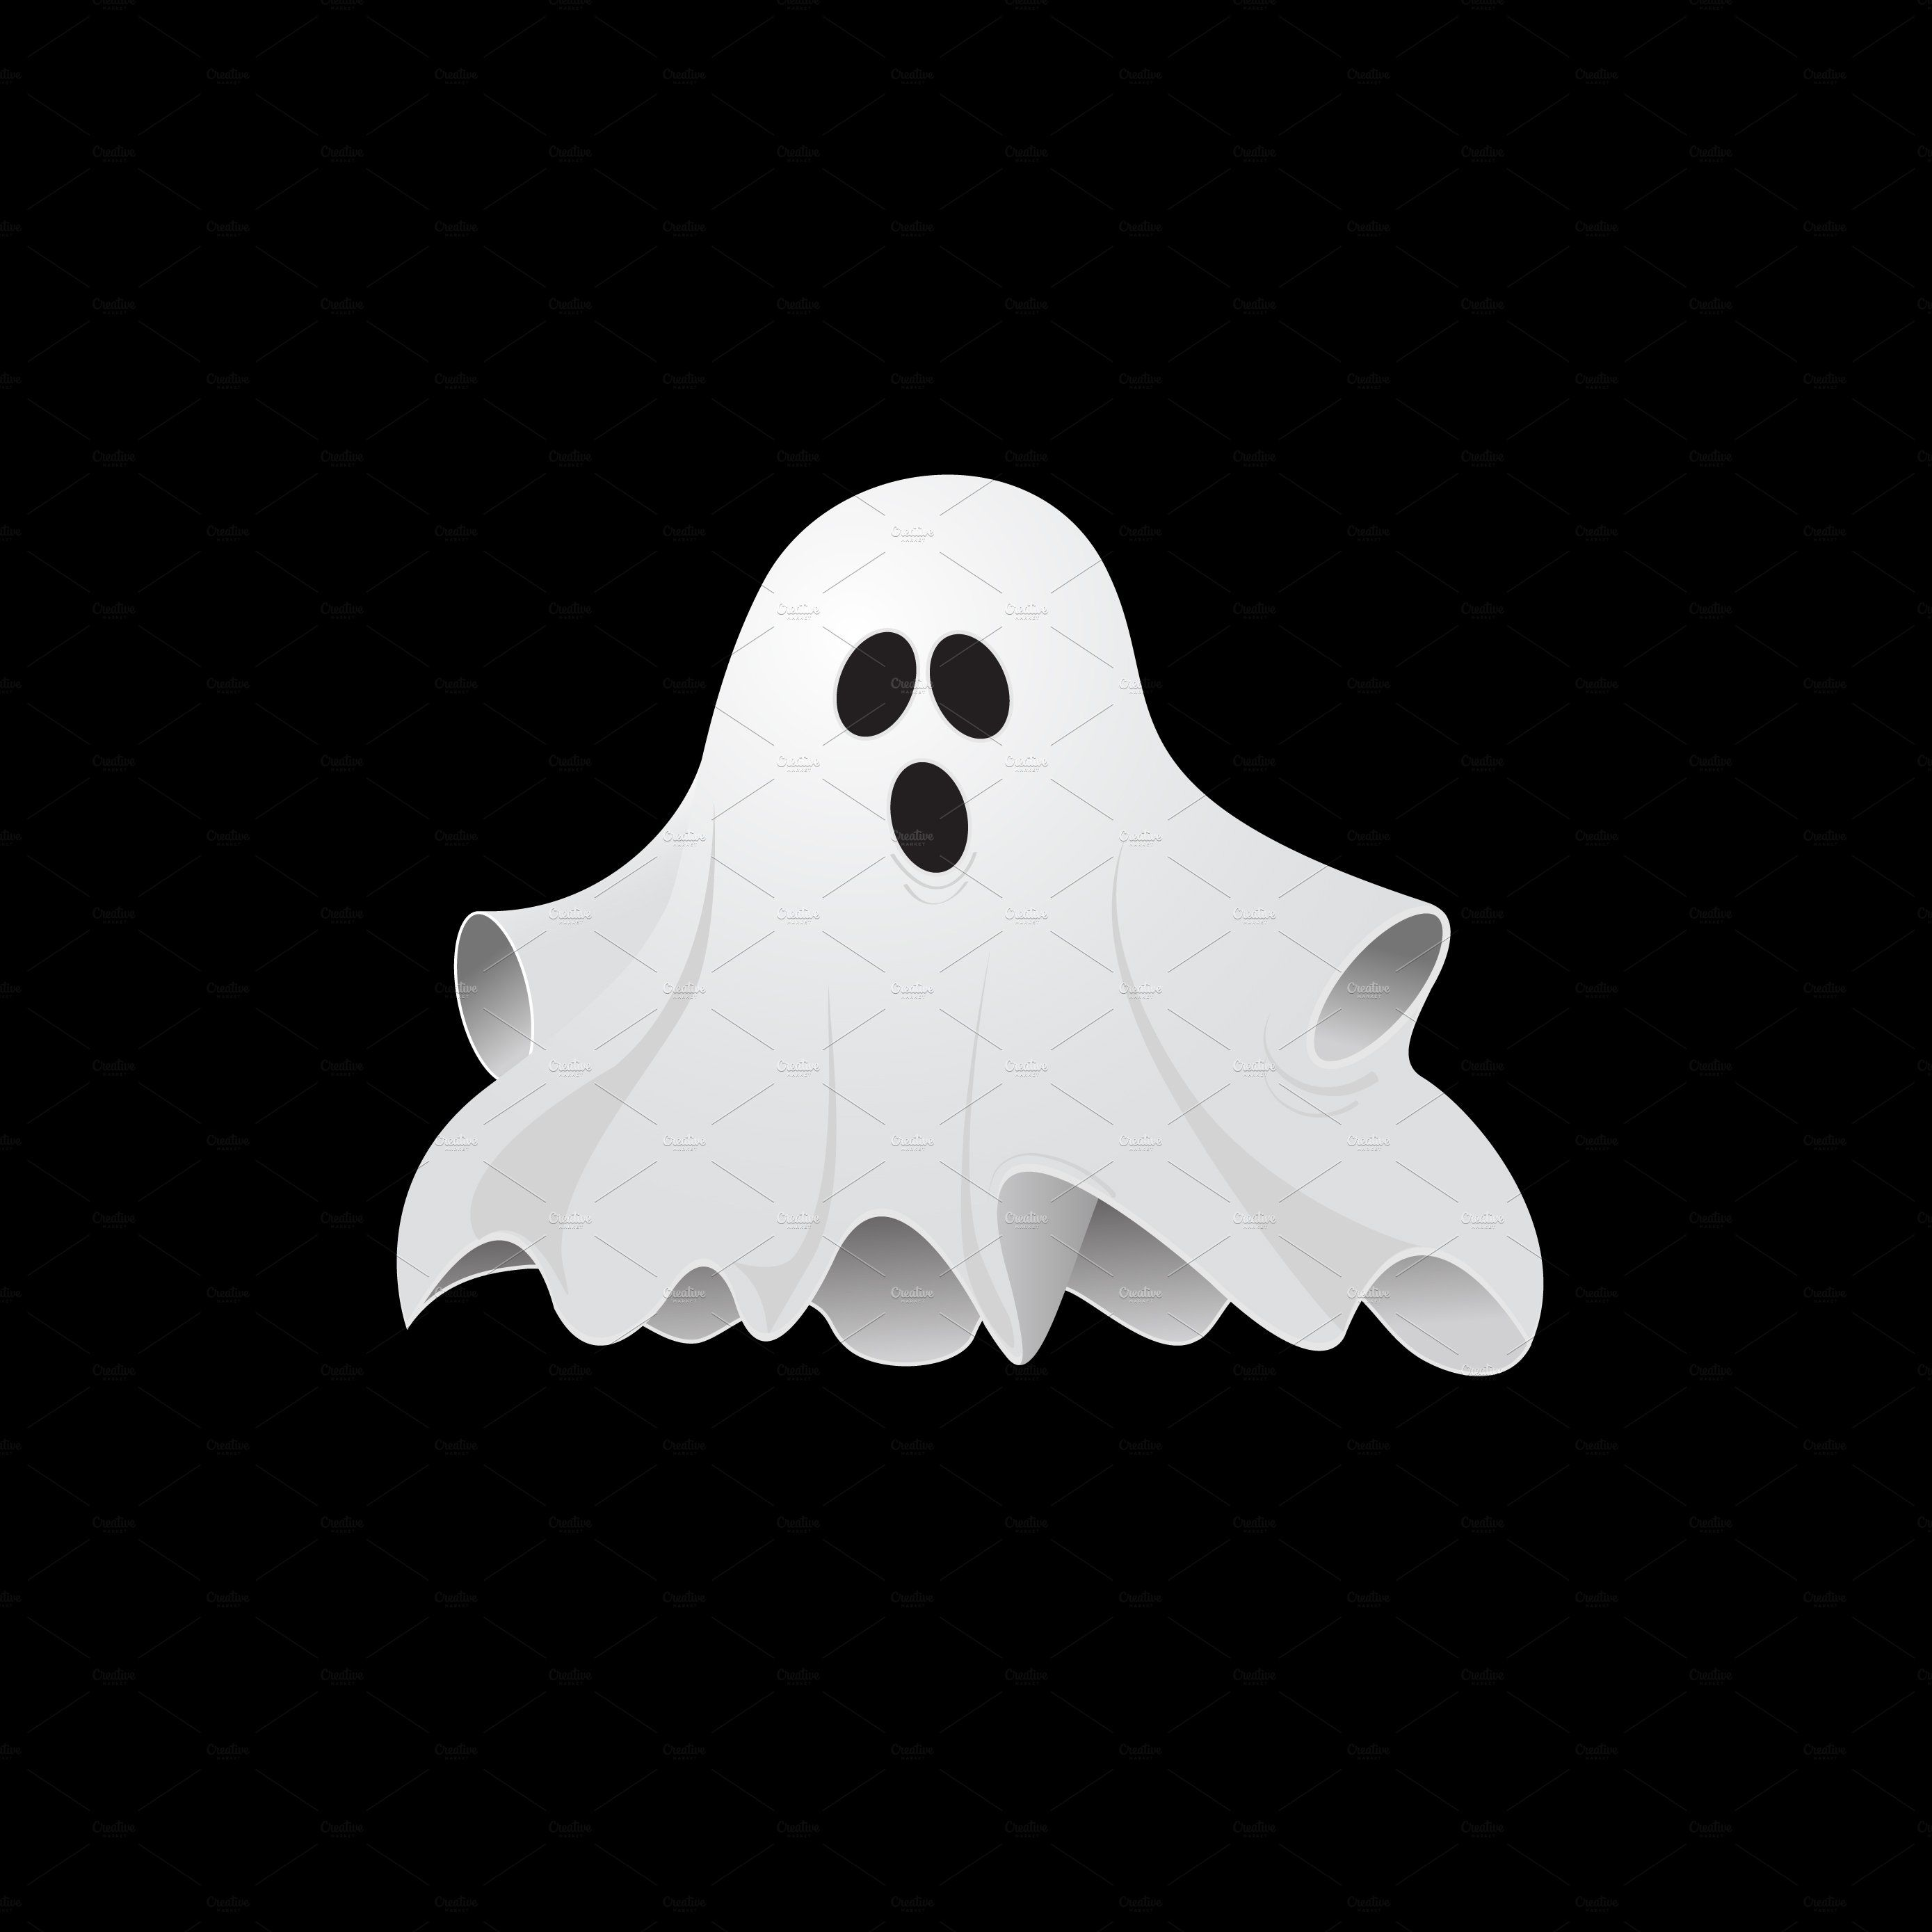 Halloween Ghost Ghost Drawing Halloween Ghosts Cute Ghost What a cute ghosts!!spooky (i.imgur.com). halloween ghost ghost drawing